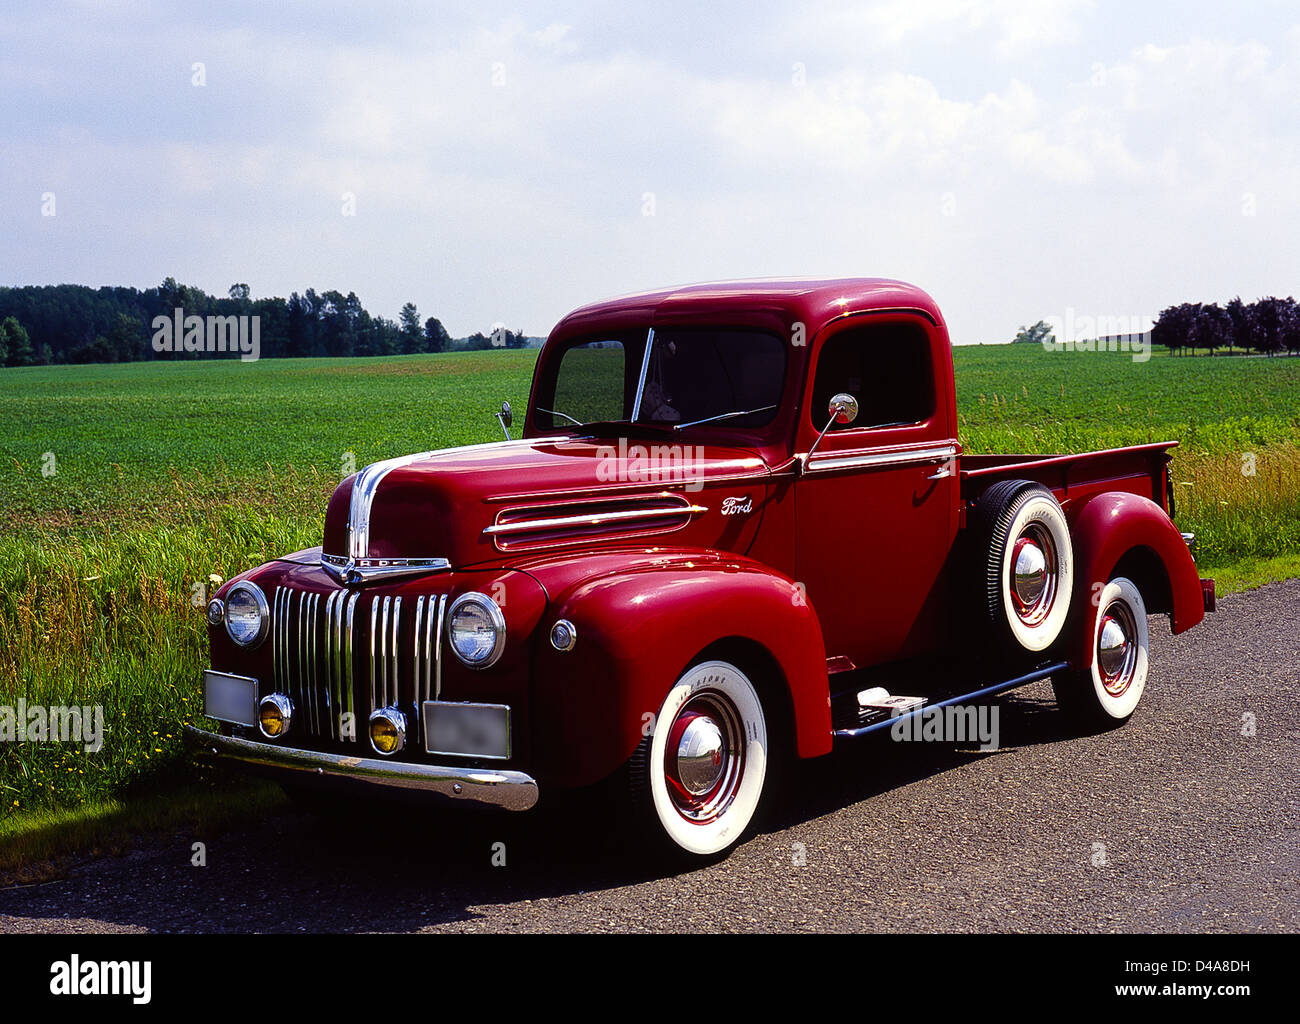 1946 Ford Pick Up Truck Stock Photo Alamy